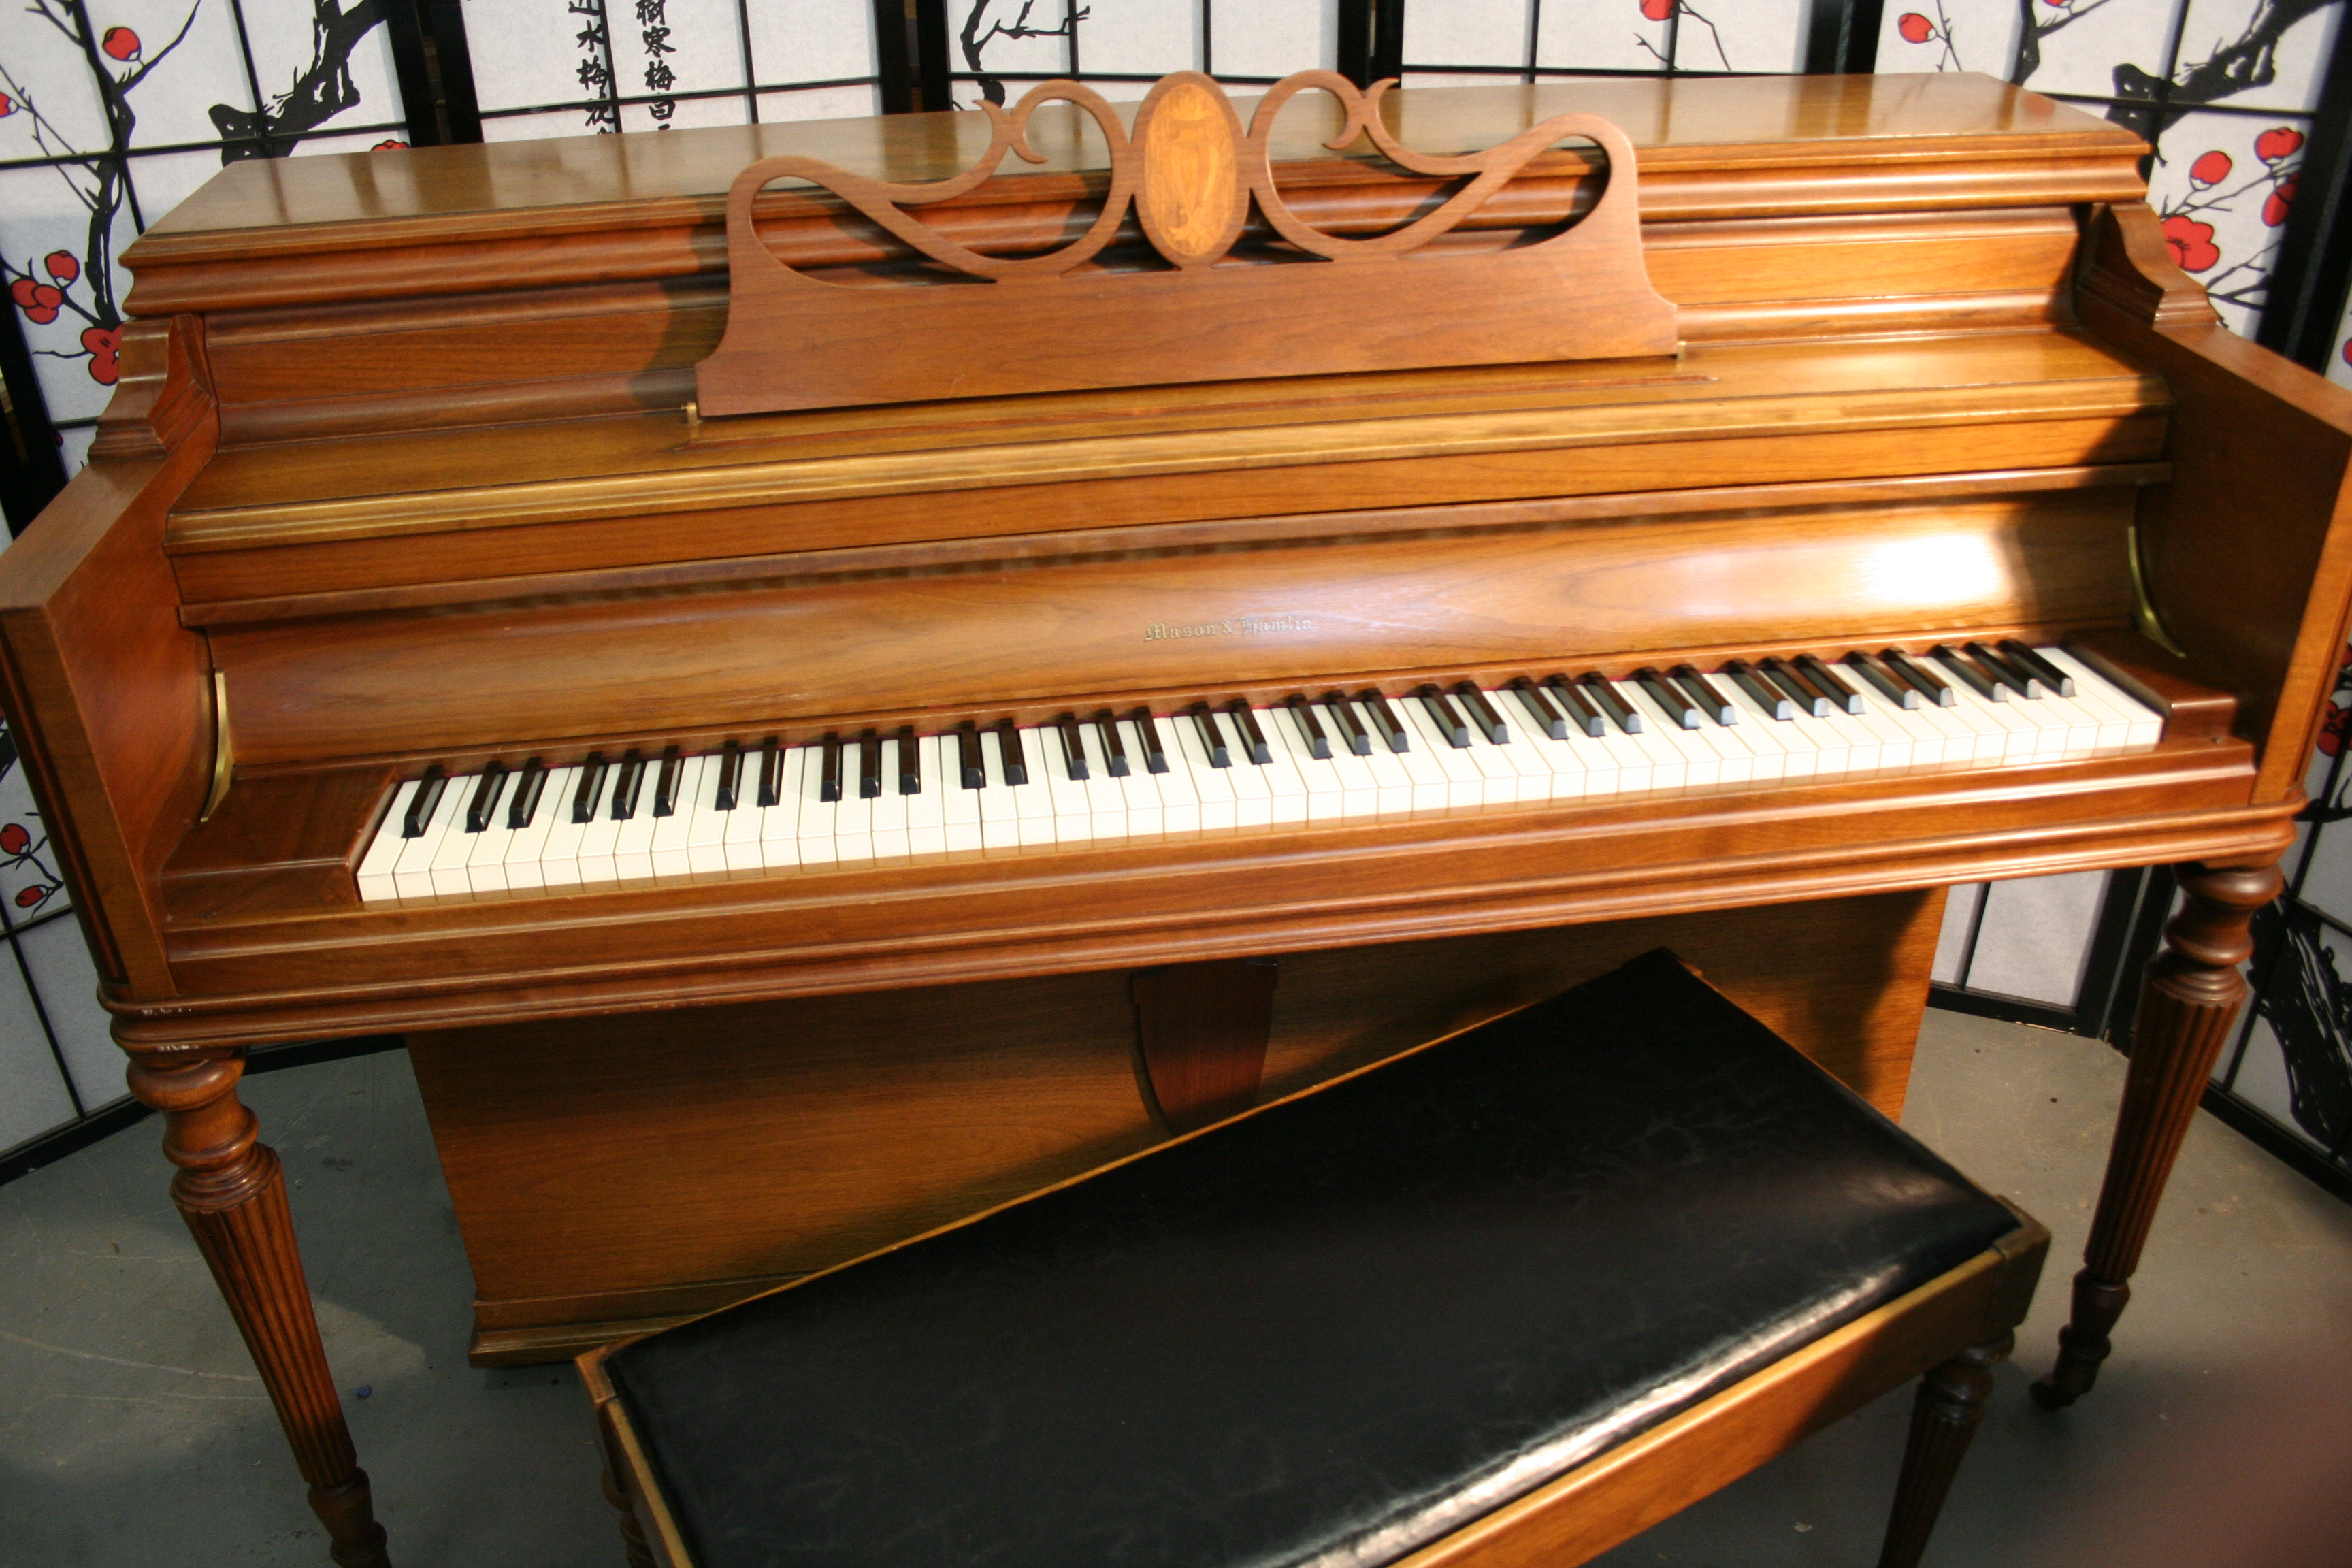 Sonnys piano tv console and upright pianos for sale sold yamaha console piano walnut - Yamaha console piano models ...